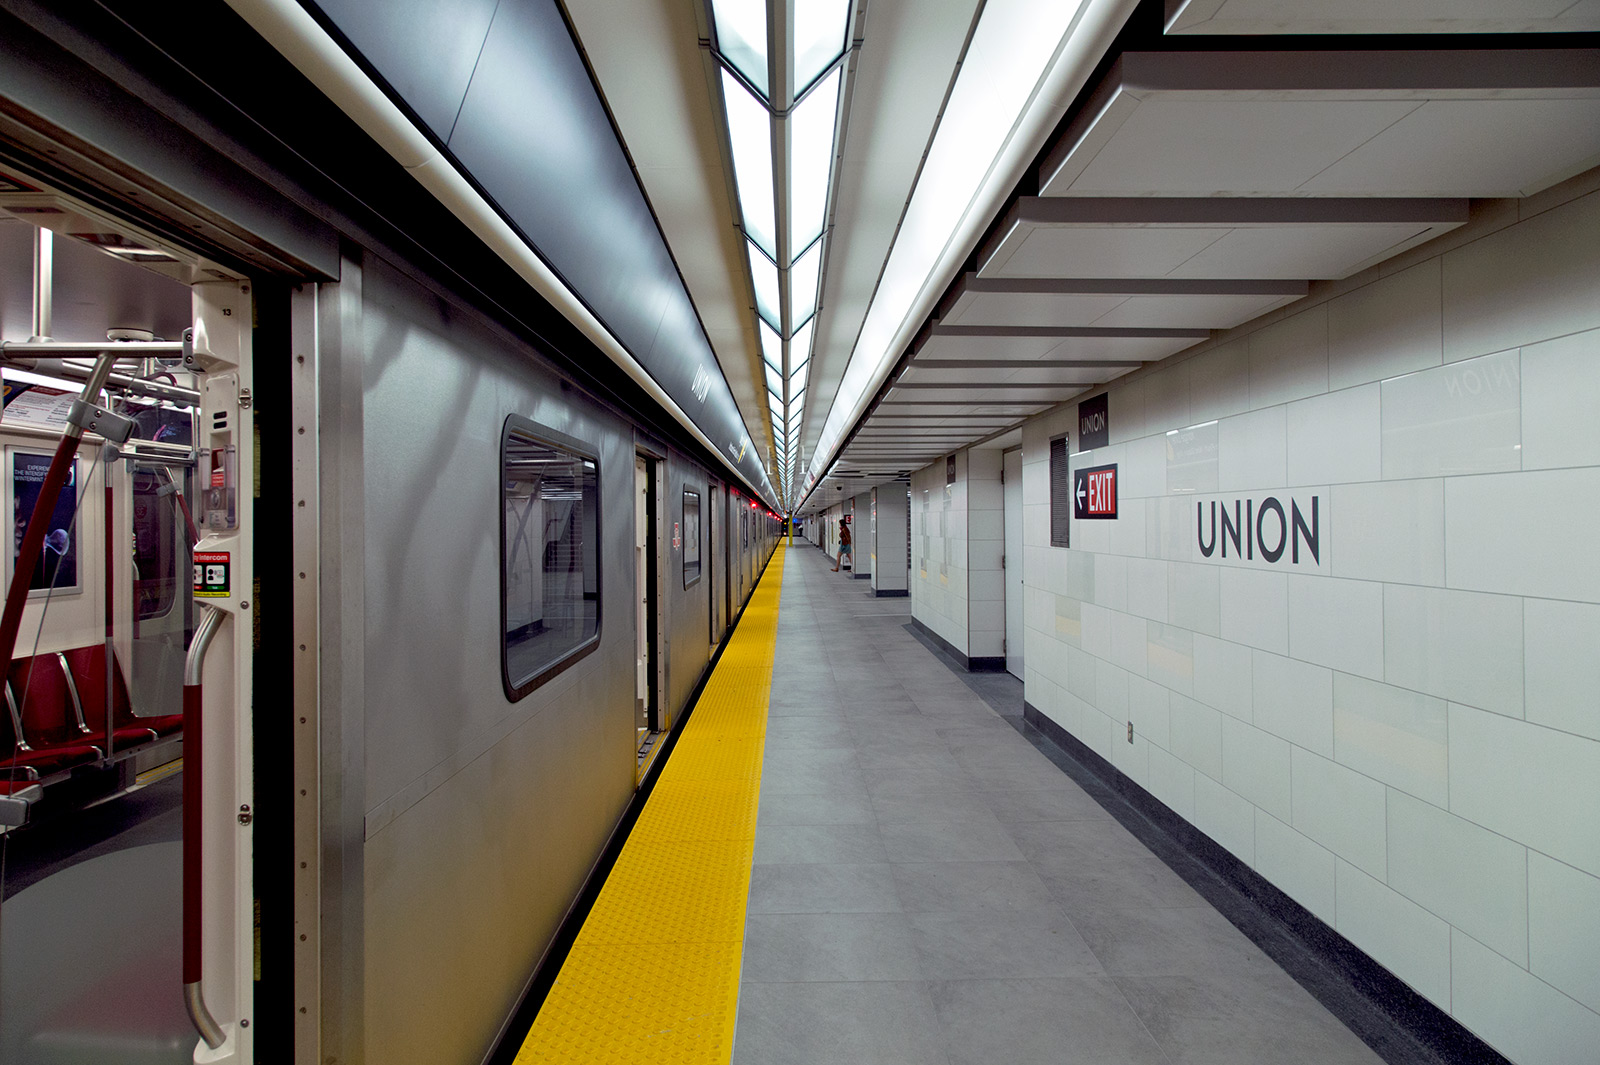 20140818. Finally, the TTC's Union Station (Toronto) has its sec